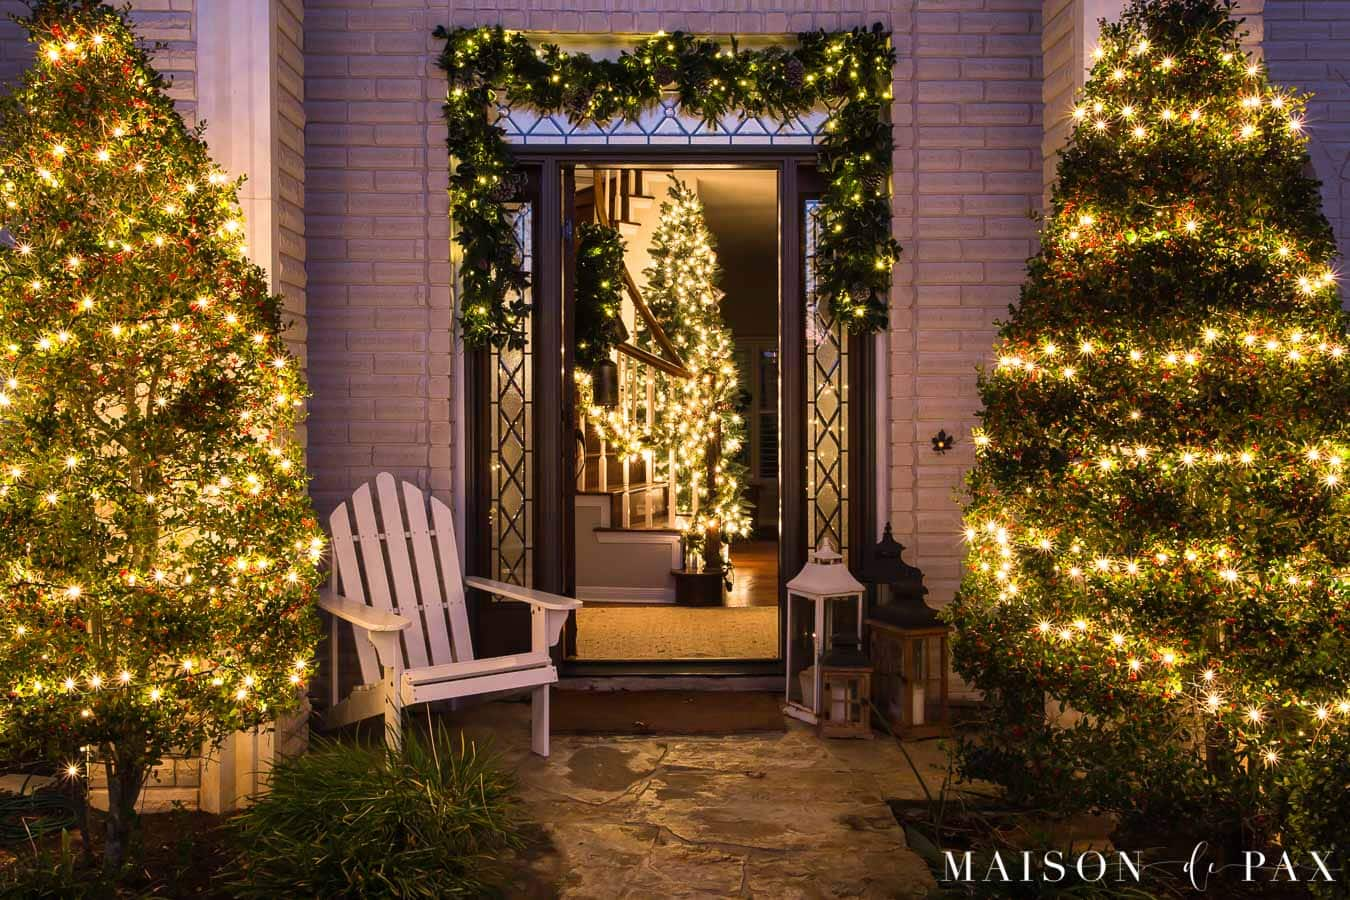 home lit up at night with Christmas lights | Maison de Pax